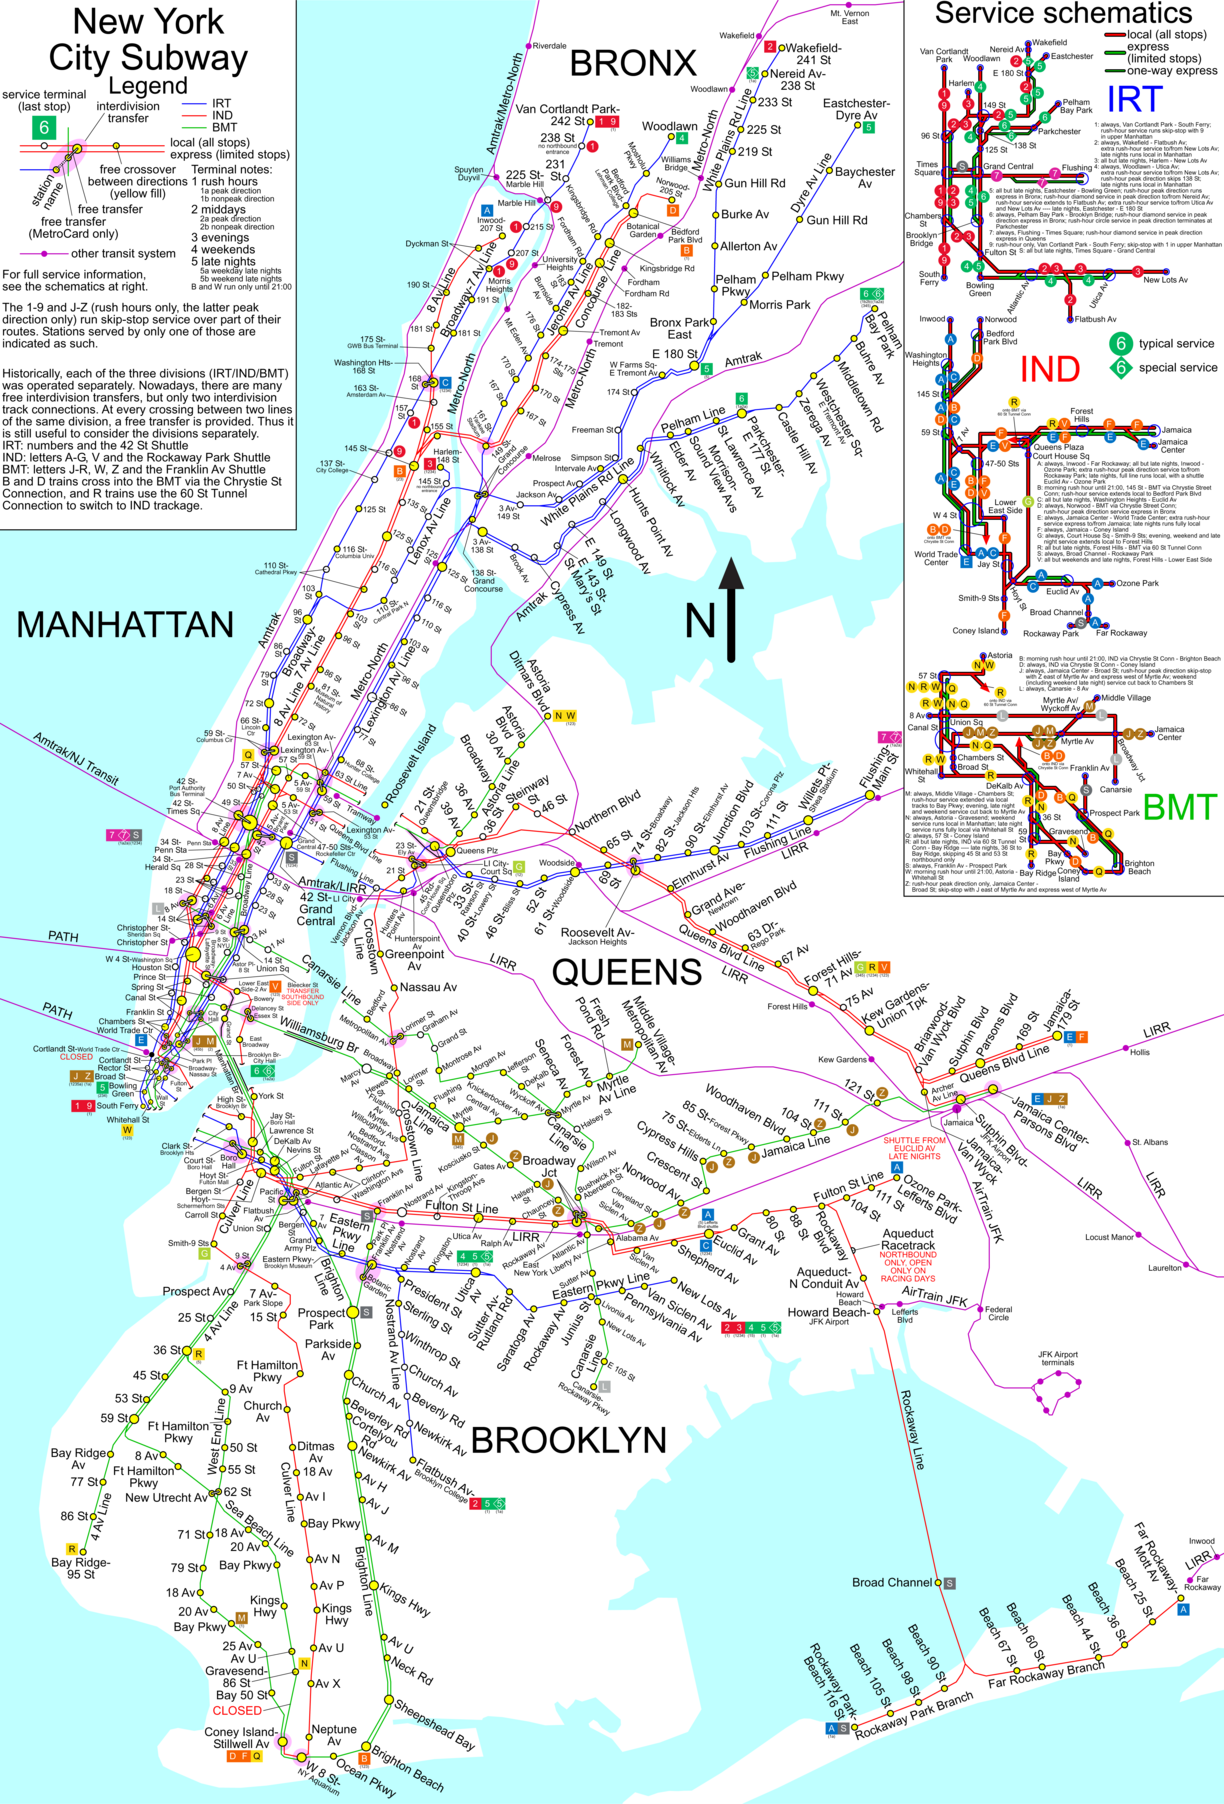 Subway Map For New York City.Www Nycsubway Org New York City Subway Route Map By Spui